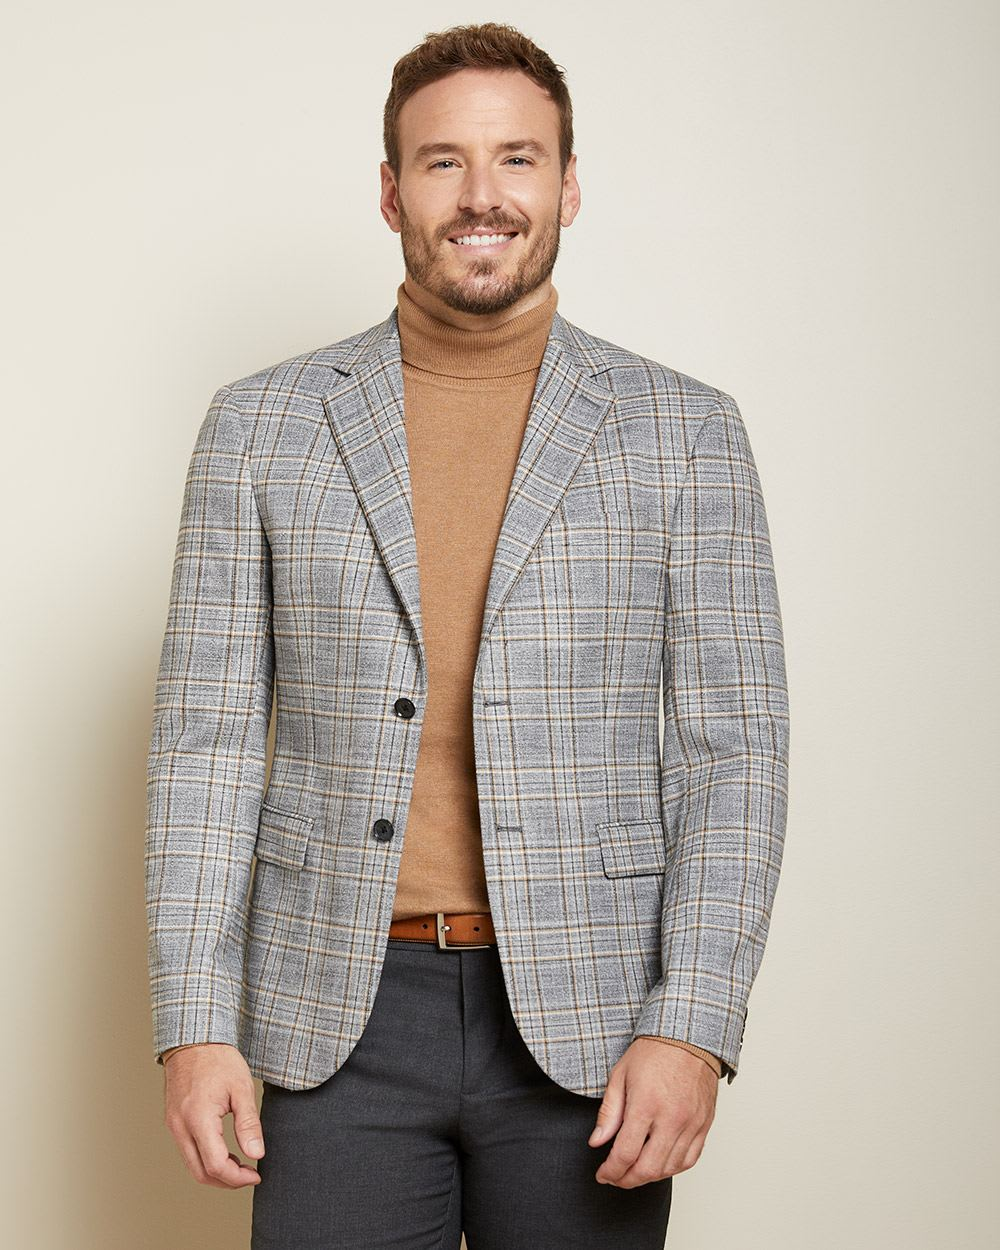 Athletic fit checkered twisted yarn suit blazer